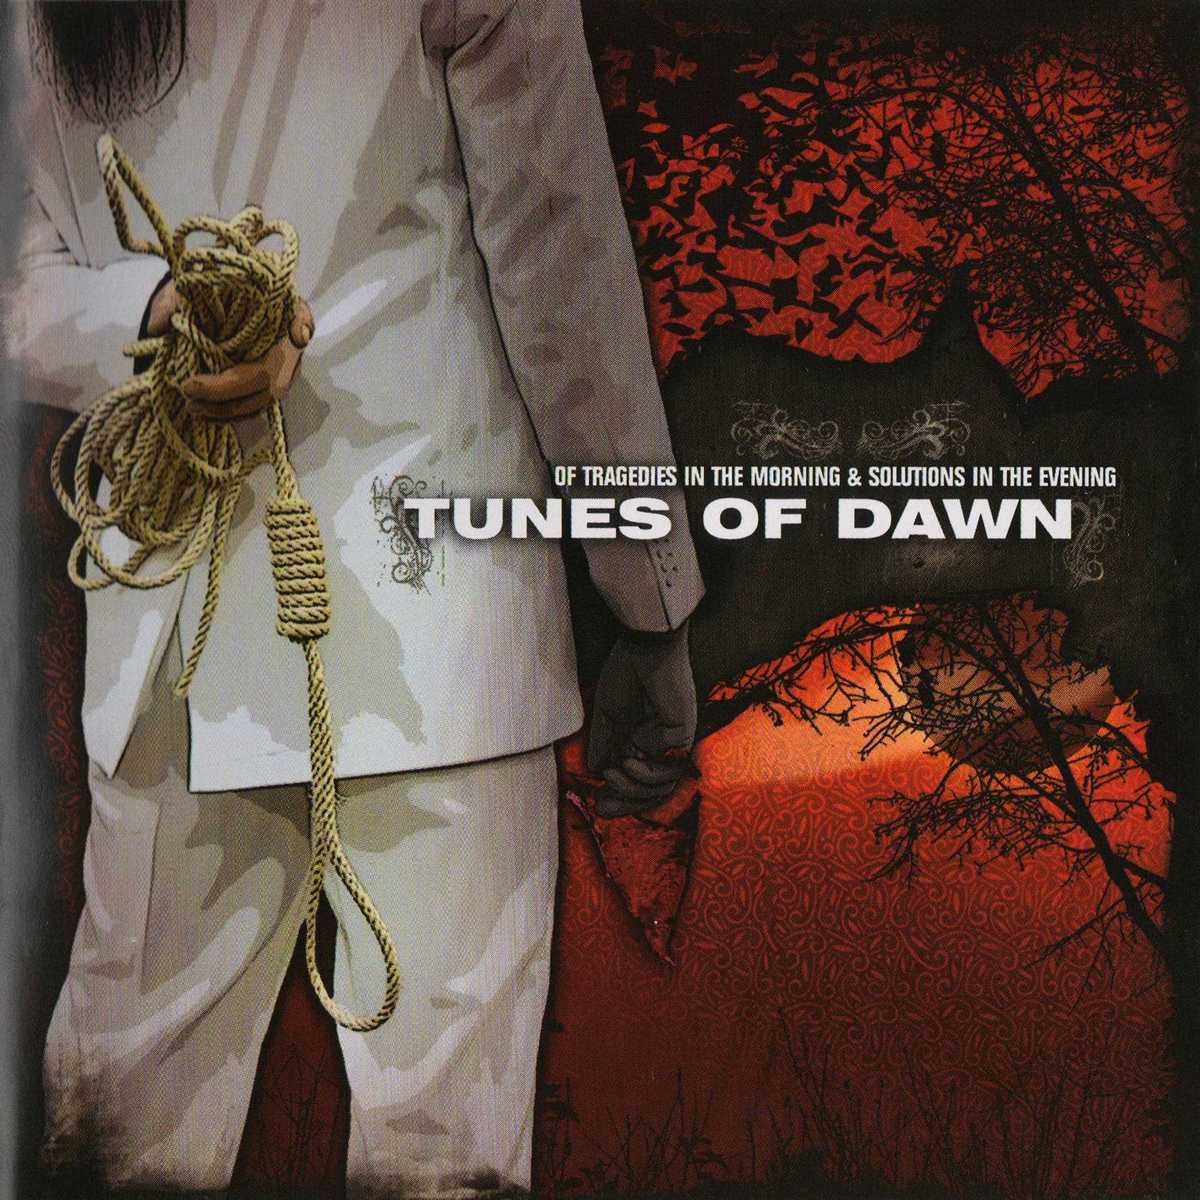 Tunes Of Dawn: Of Tragedies in the Morning and Solutions in the Evening (2008) Book Cover